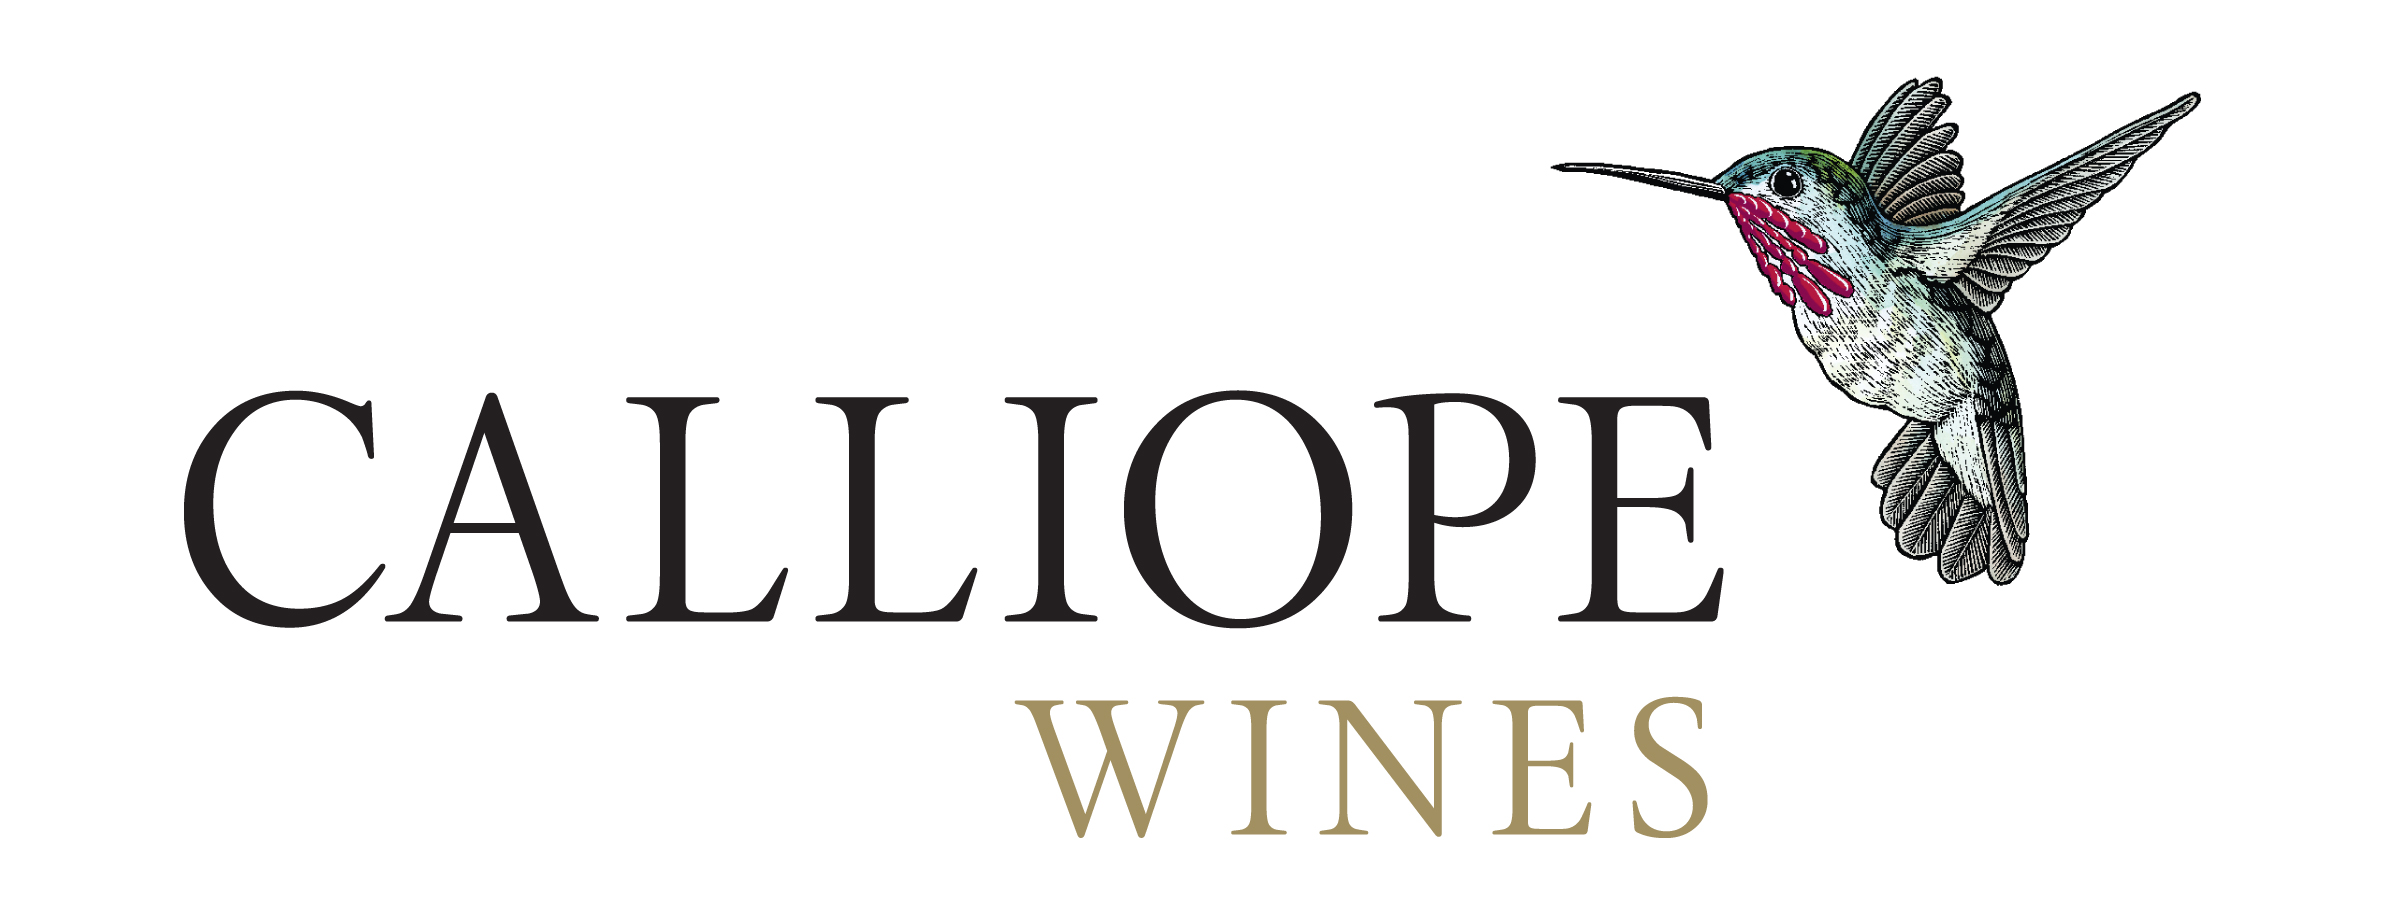 Calliope Wines, Oliver, BC ~  Ongoing marketing management, advertising and collateral production.